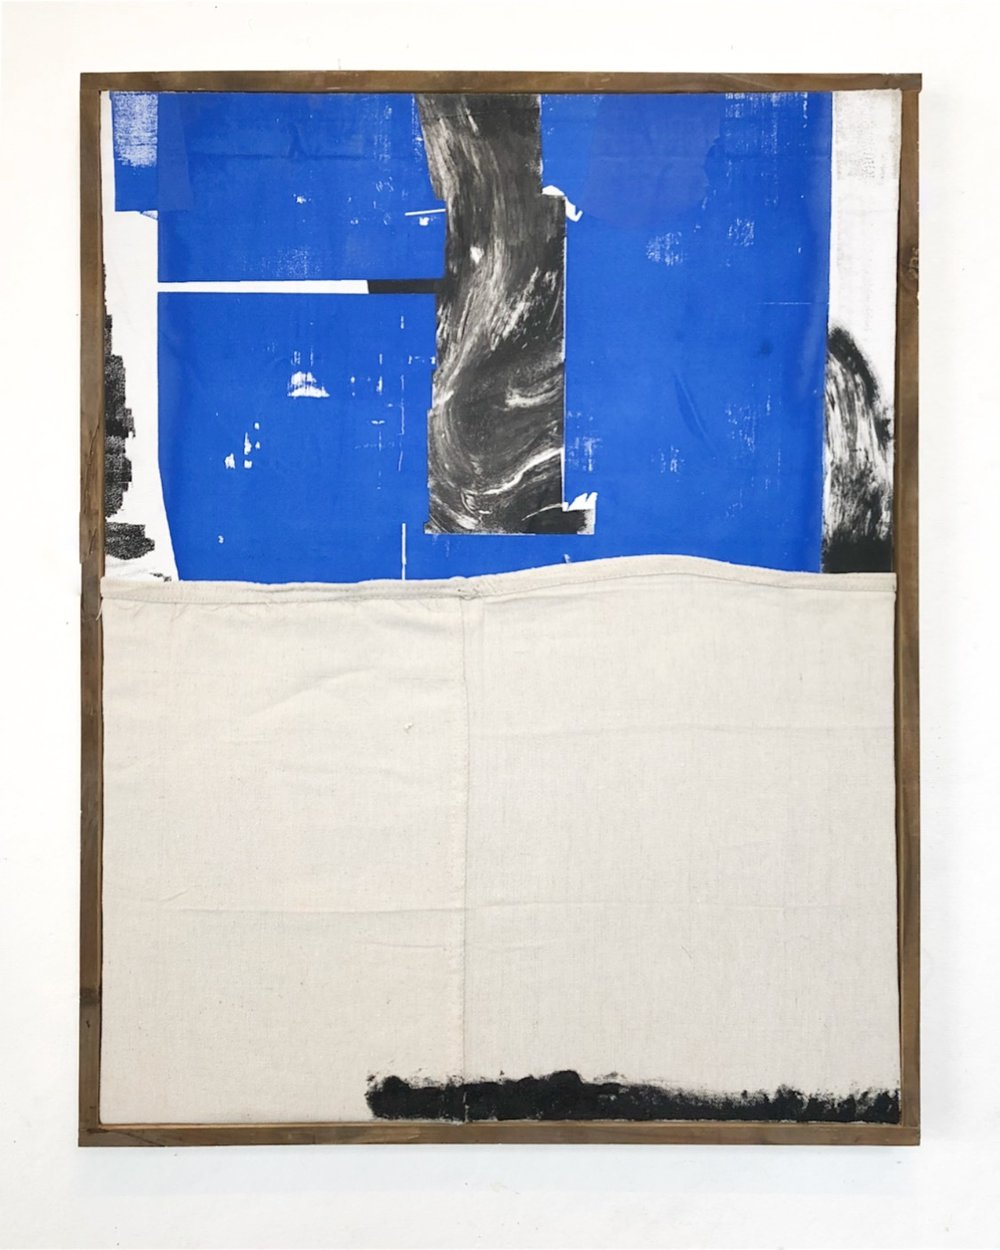 "SHIV'AH2 (שבעה), gesso, oil stick and ink with sand from the West Bank and Israel on linen and microsuede. Stretched on silkscreen frame 21.5"" x 27.5"", 2017"